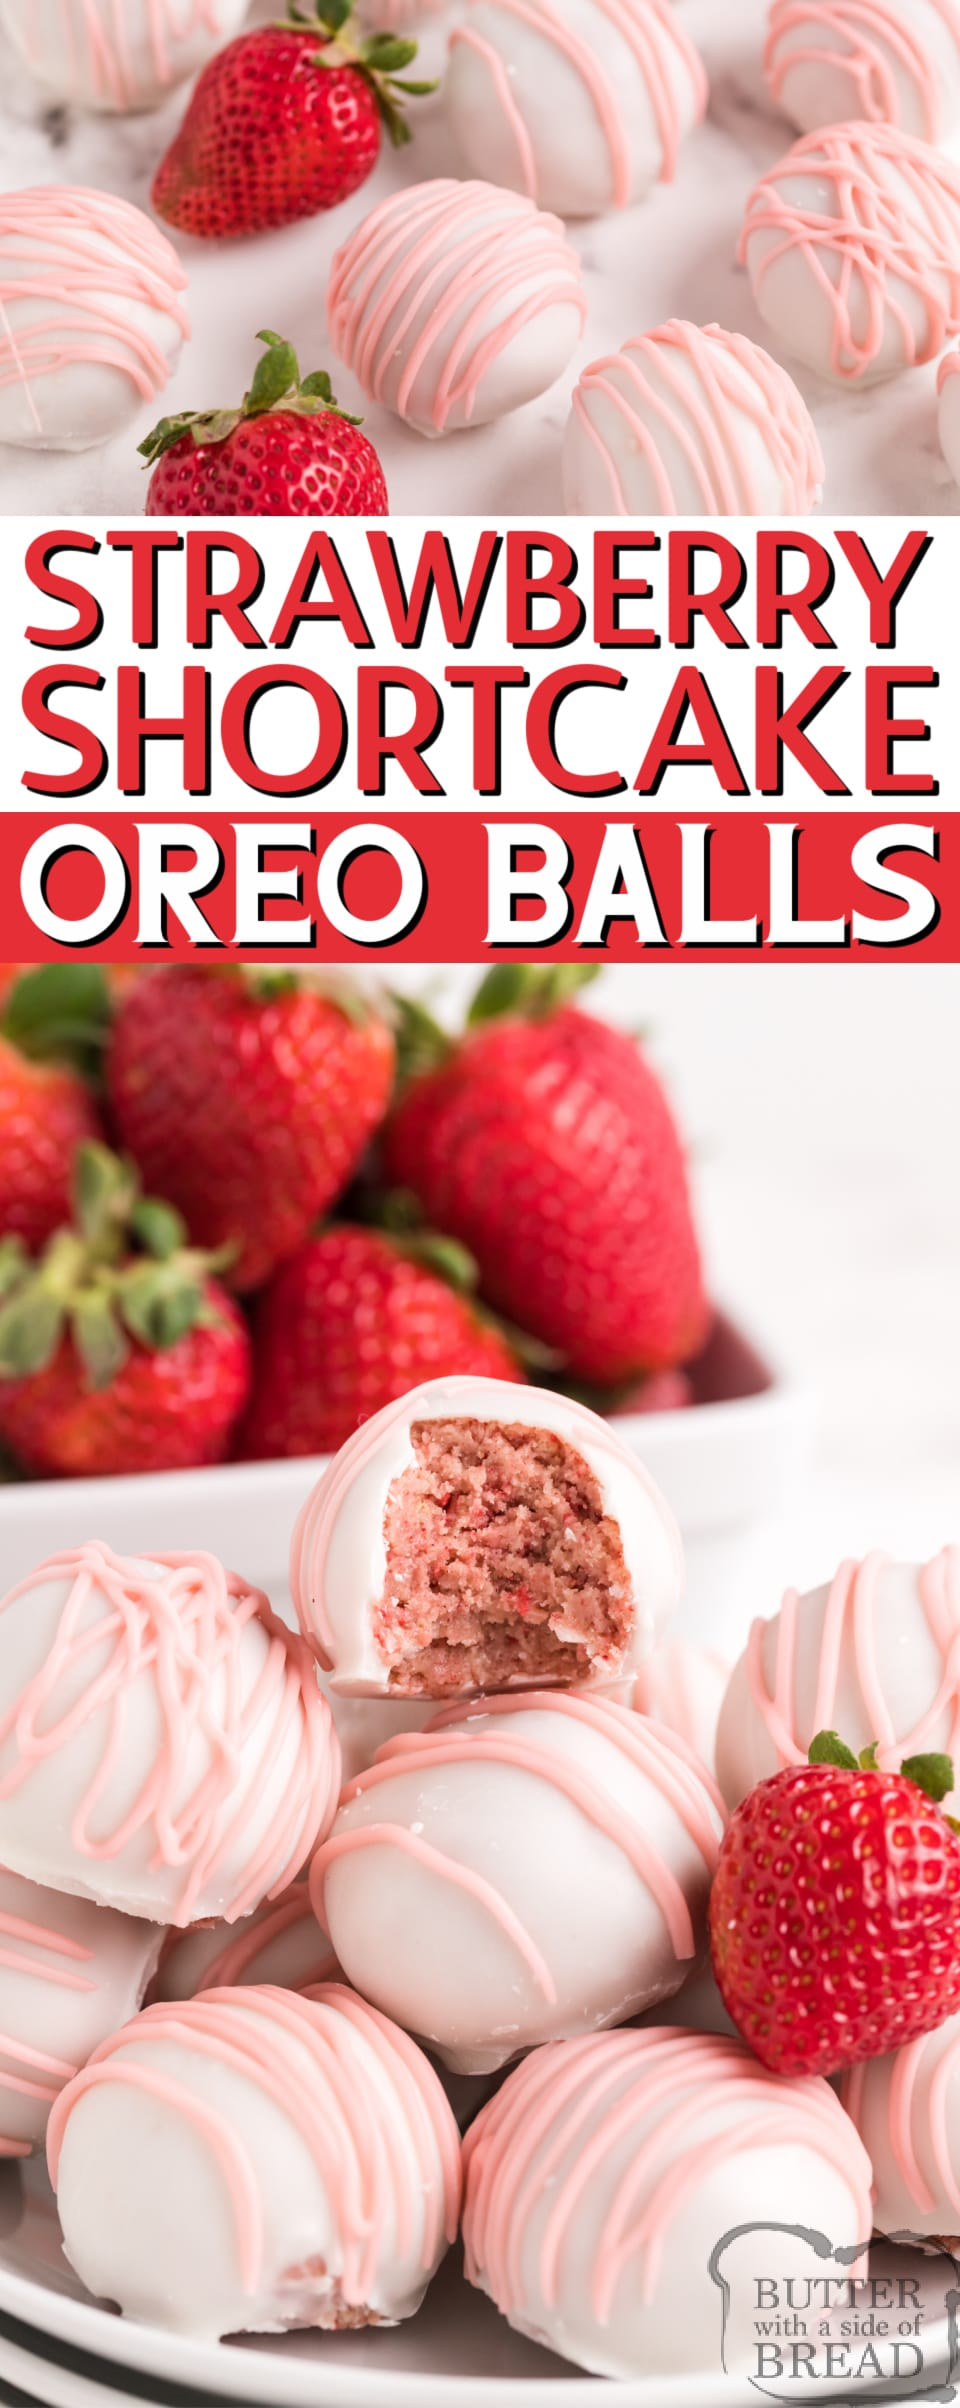 Strawberry Shortcake Oreo Balls are made in just a few minutes with dried strawberries and Golden Oreo cookies! These delicious no-bake treats are made with just 4 ingredients!